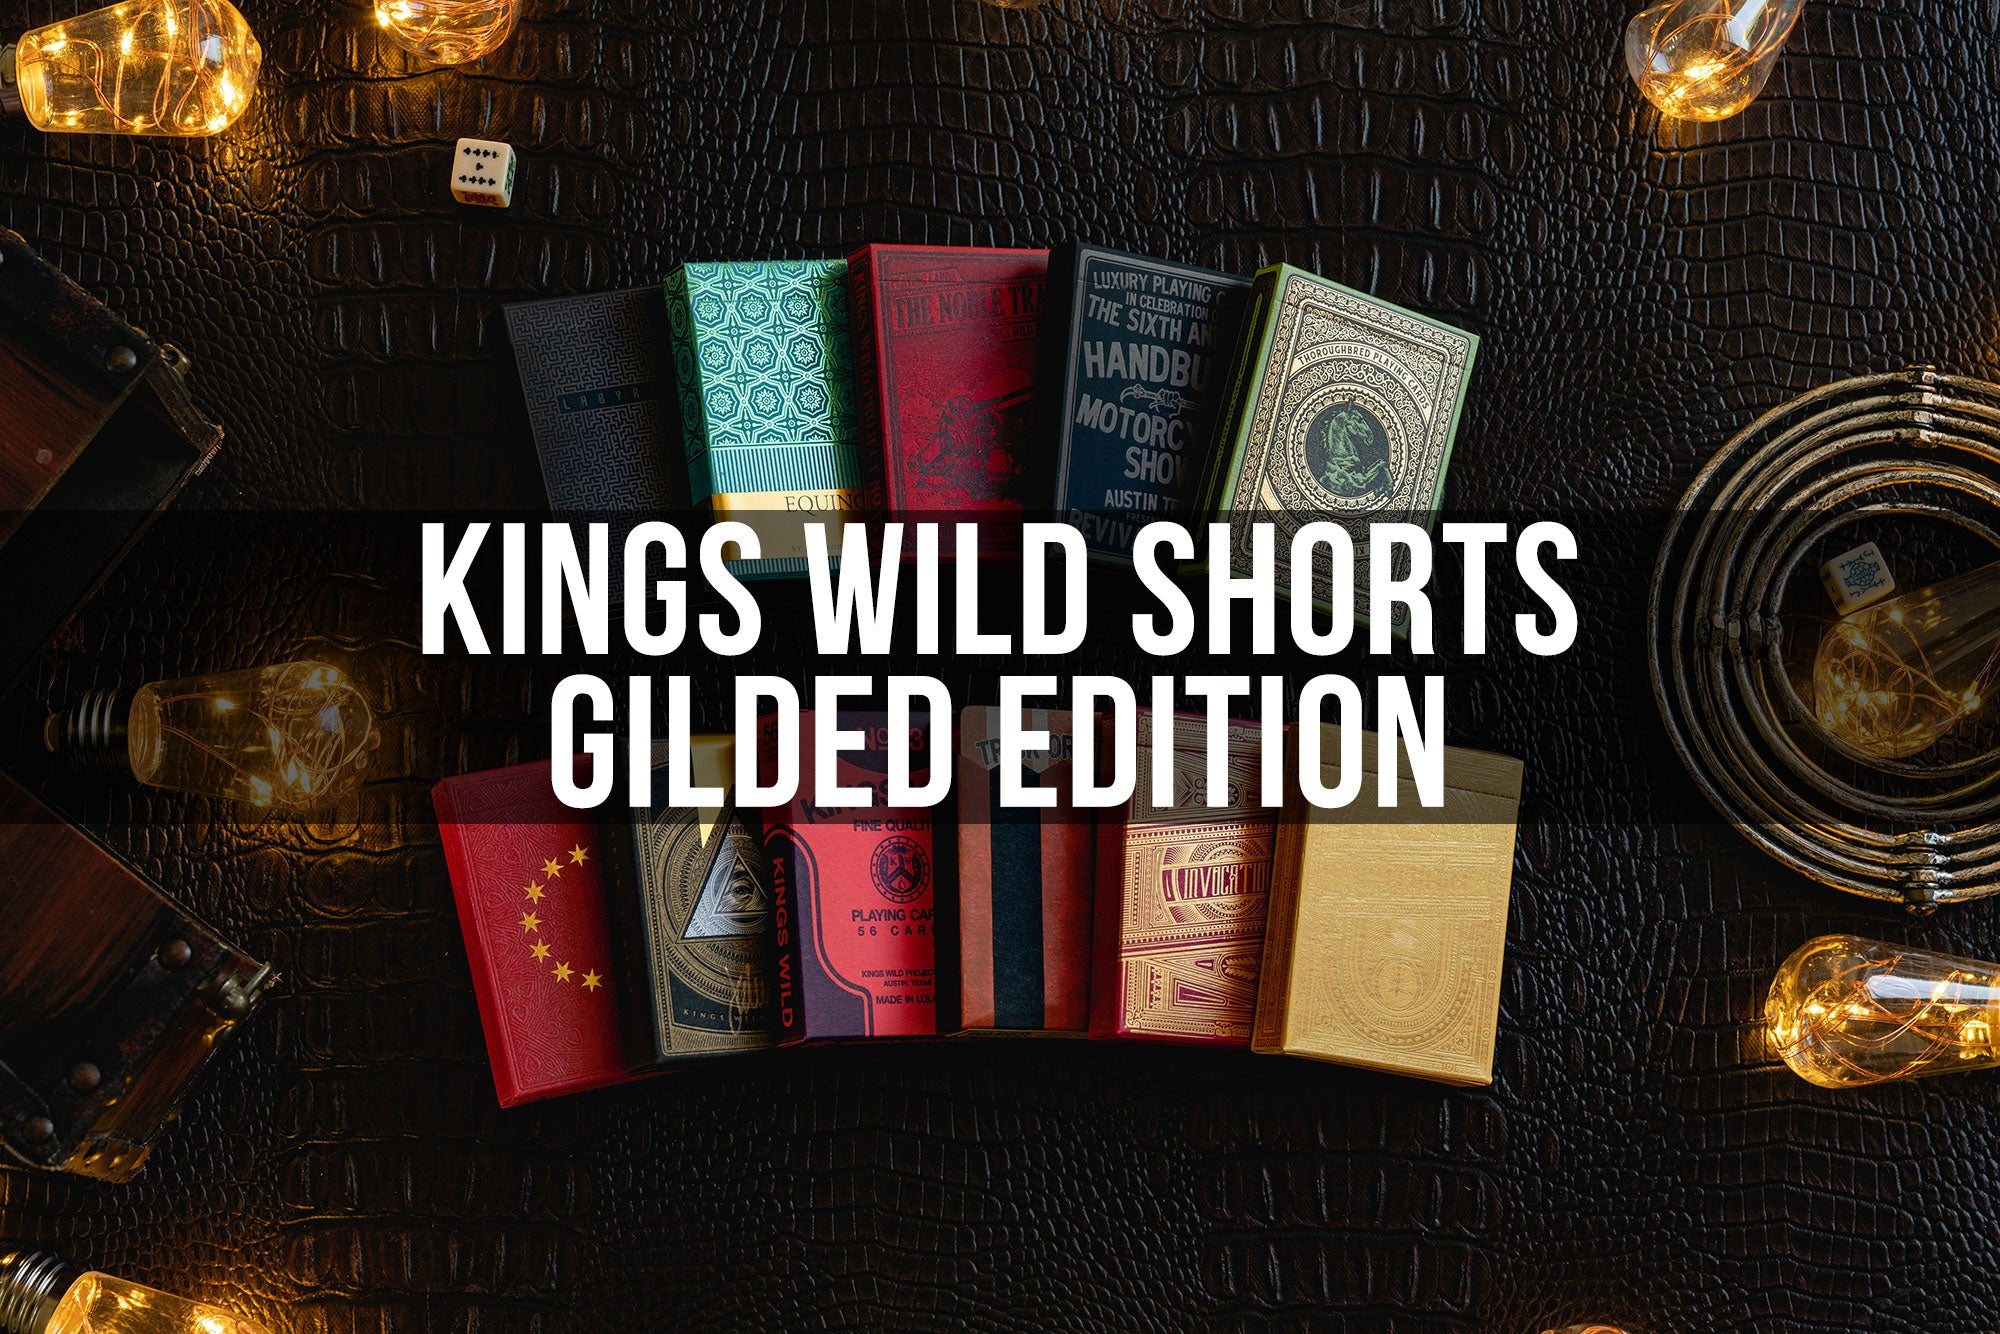 GILDED EDITION - Kings Wild Shorts Subscription (February)